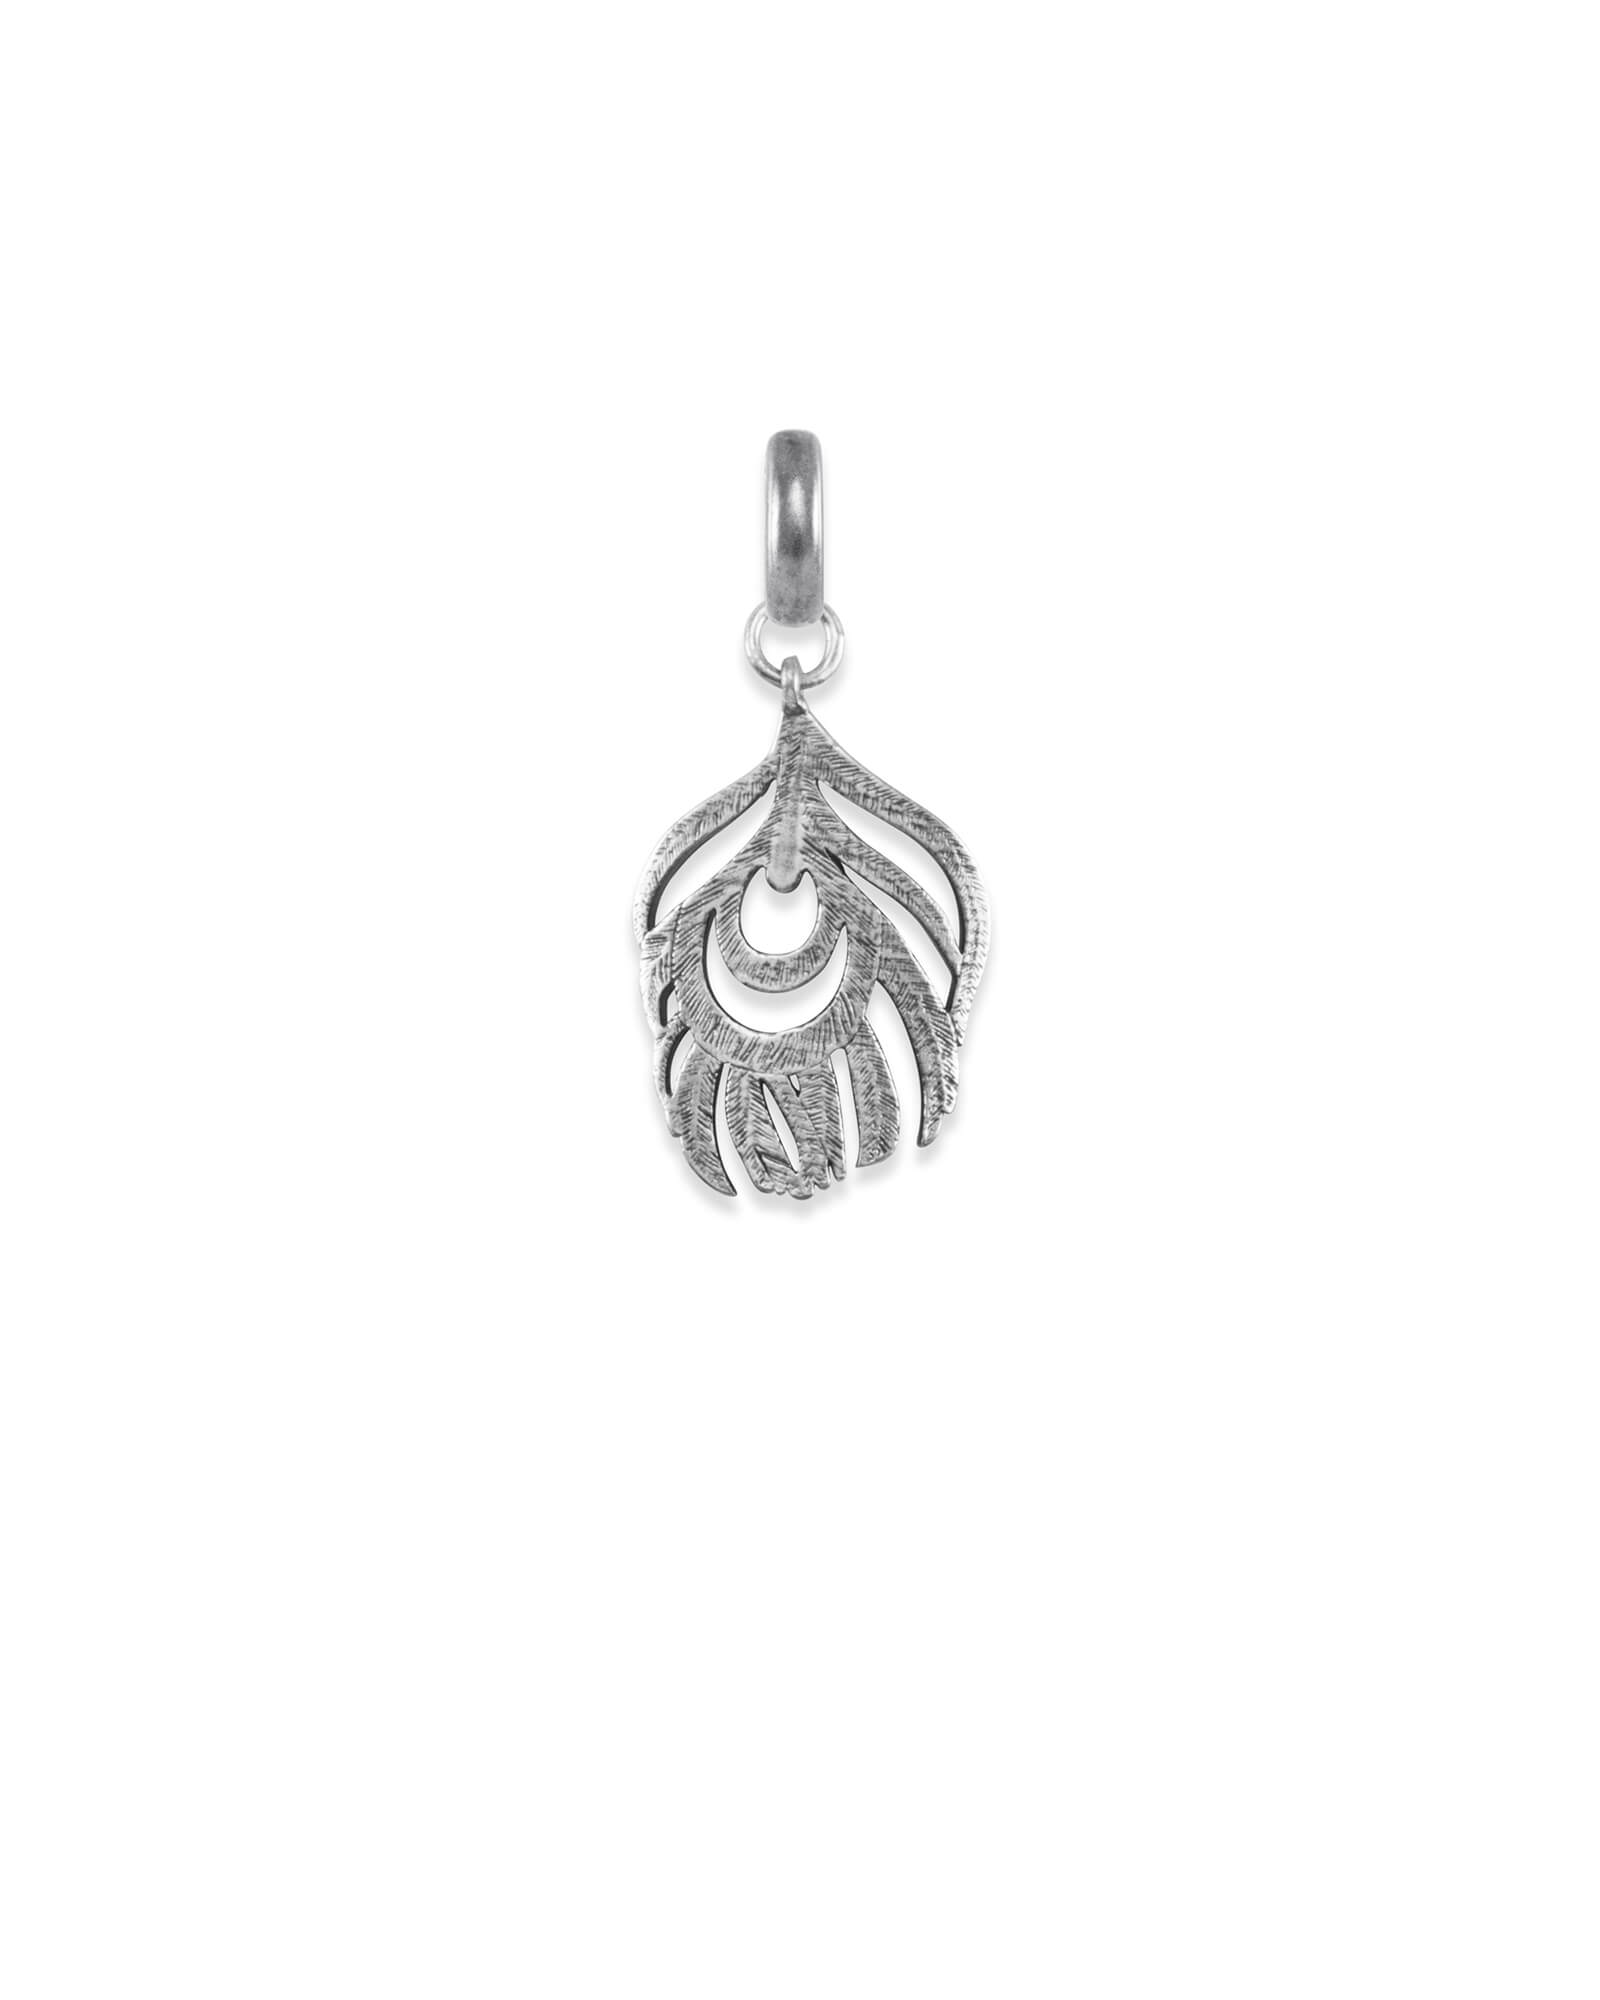 Peacock Feather Charm in Vintage Silver